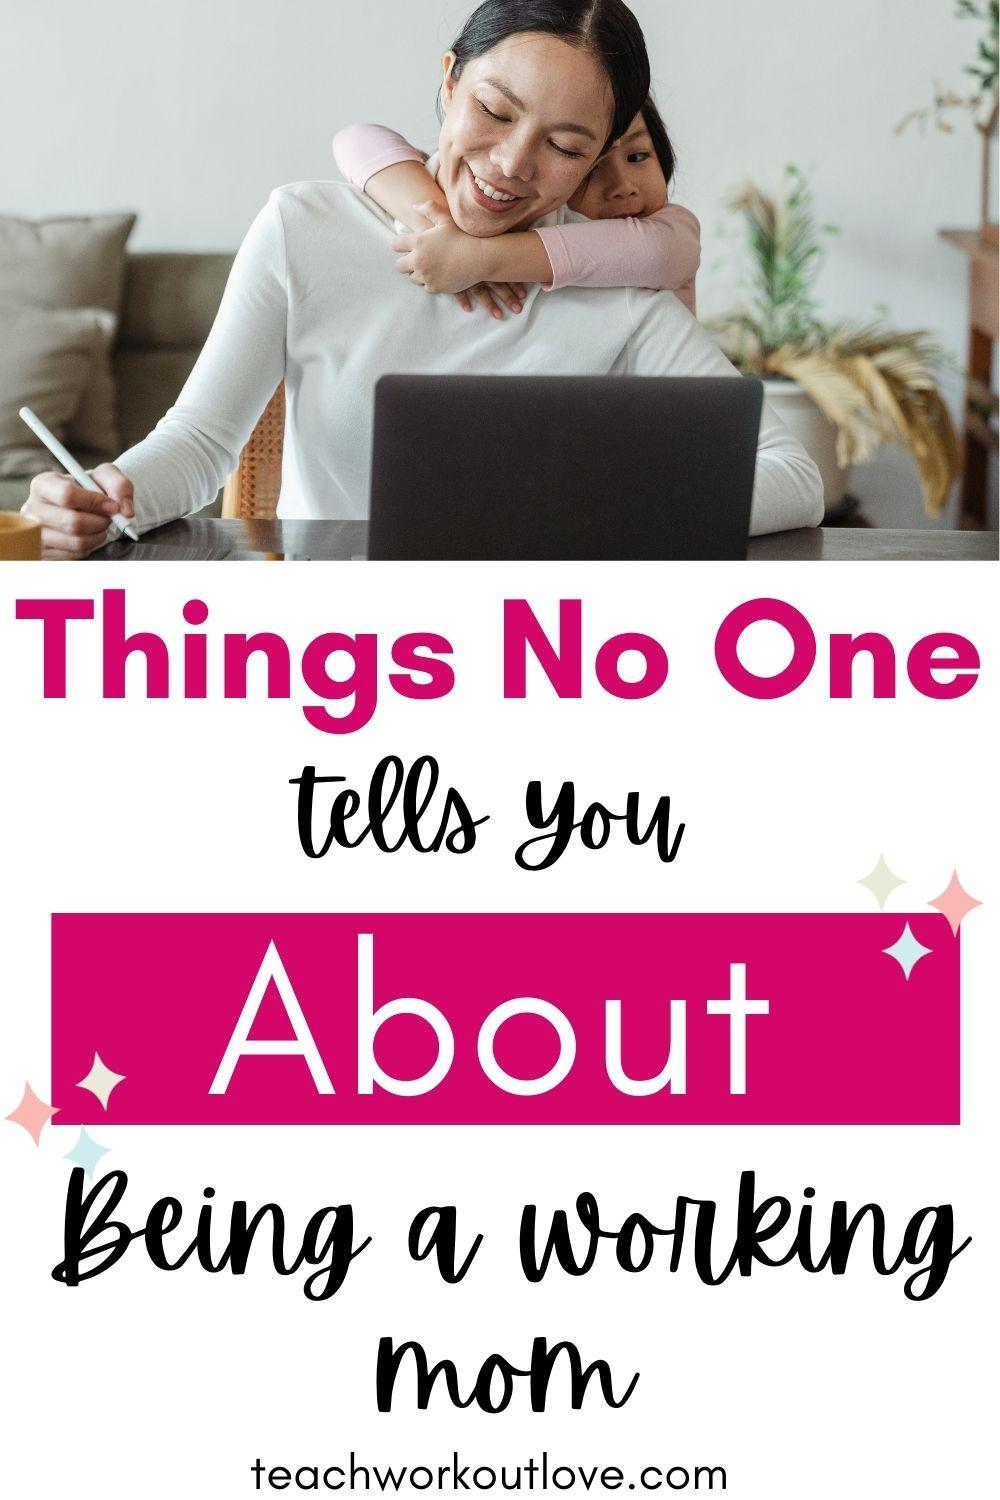 Things No One Tells You About Being a Working Mom